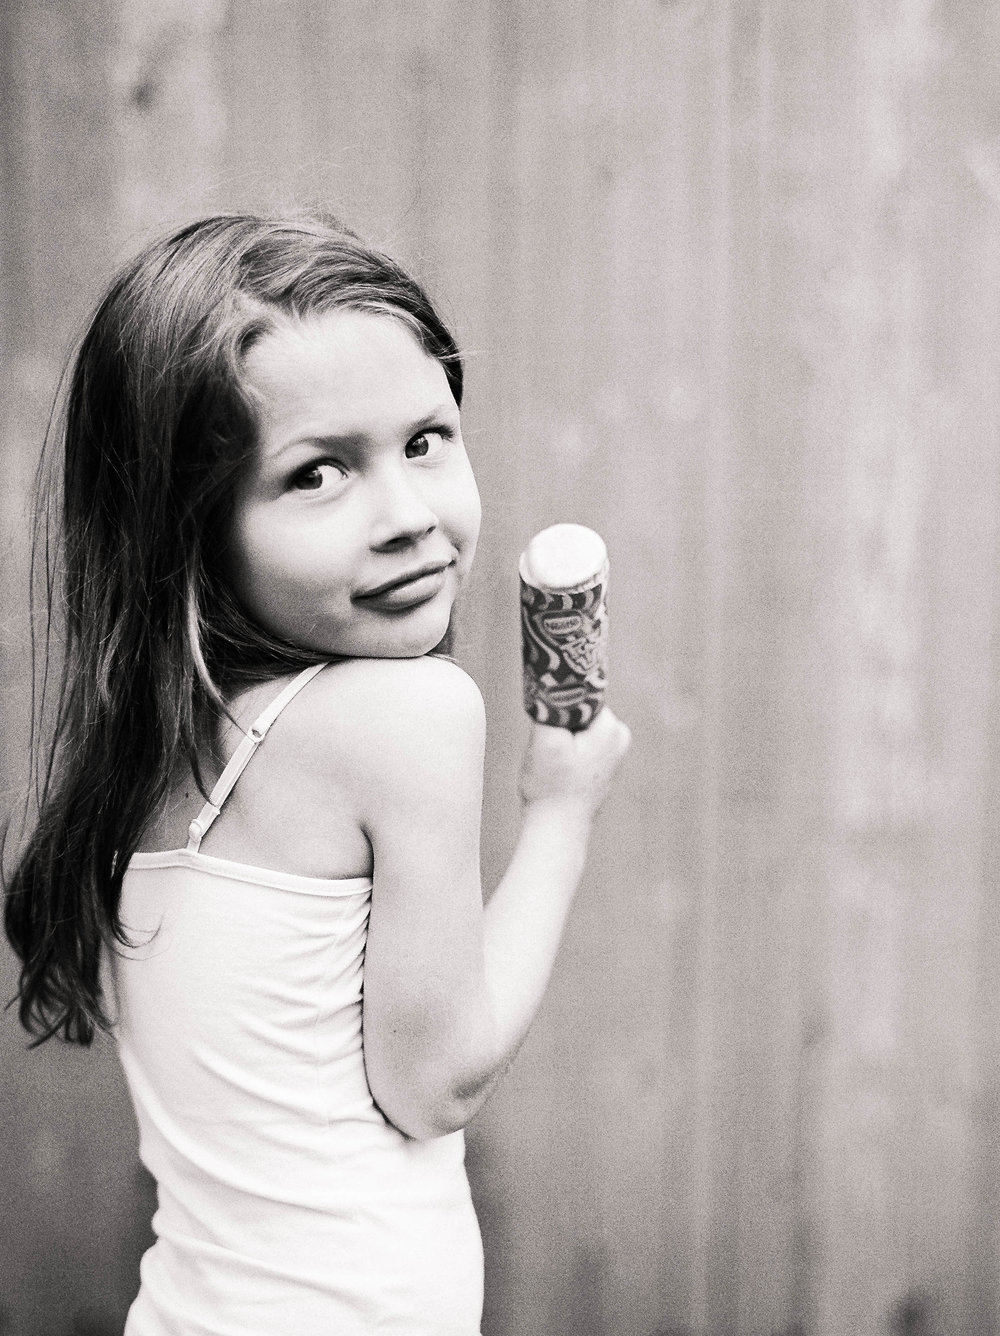 Her favorite treat is a push pop, just like mine was at her age.  Like mother, like daughter!